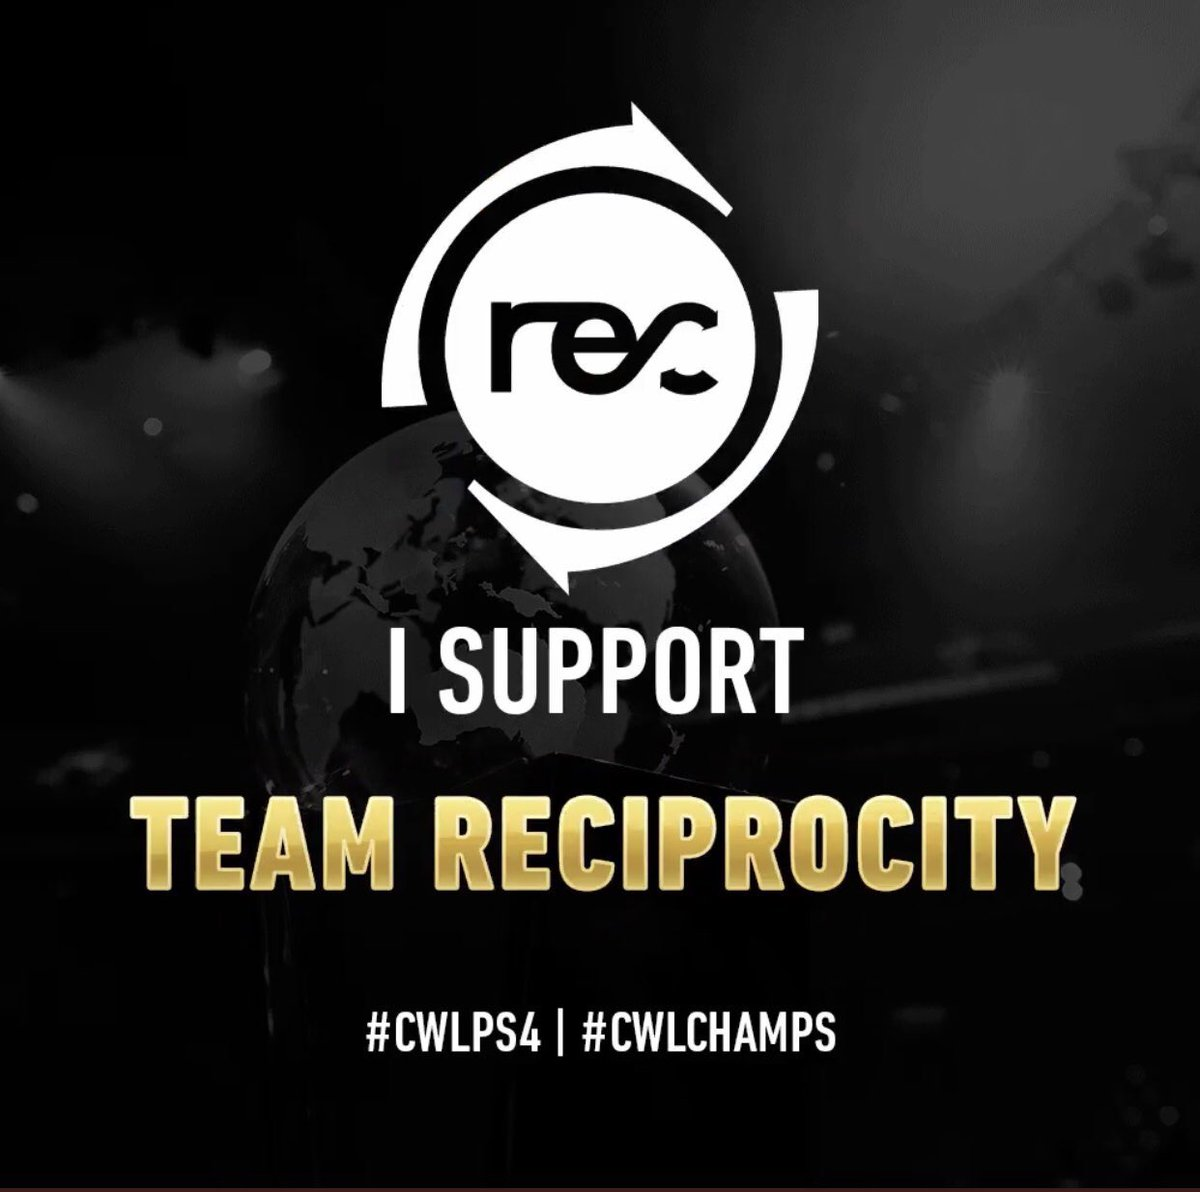 Good luck today @ZachDenyer @Alexx1935 @DylanCOD_ @DenzJT @wuskinz @SHANEE and @TeamReciprocity   It's been great following you this year. One last push today lads. #RECPack <br>http://pic.twitter.com/pG3NcWEqda